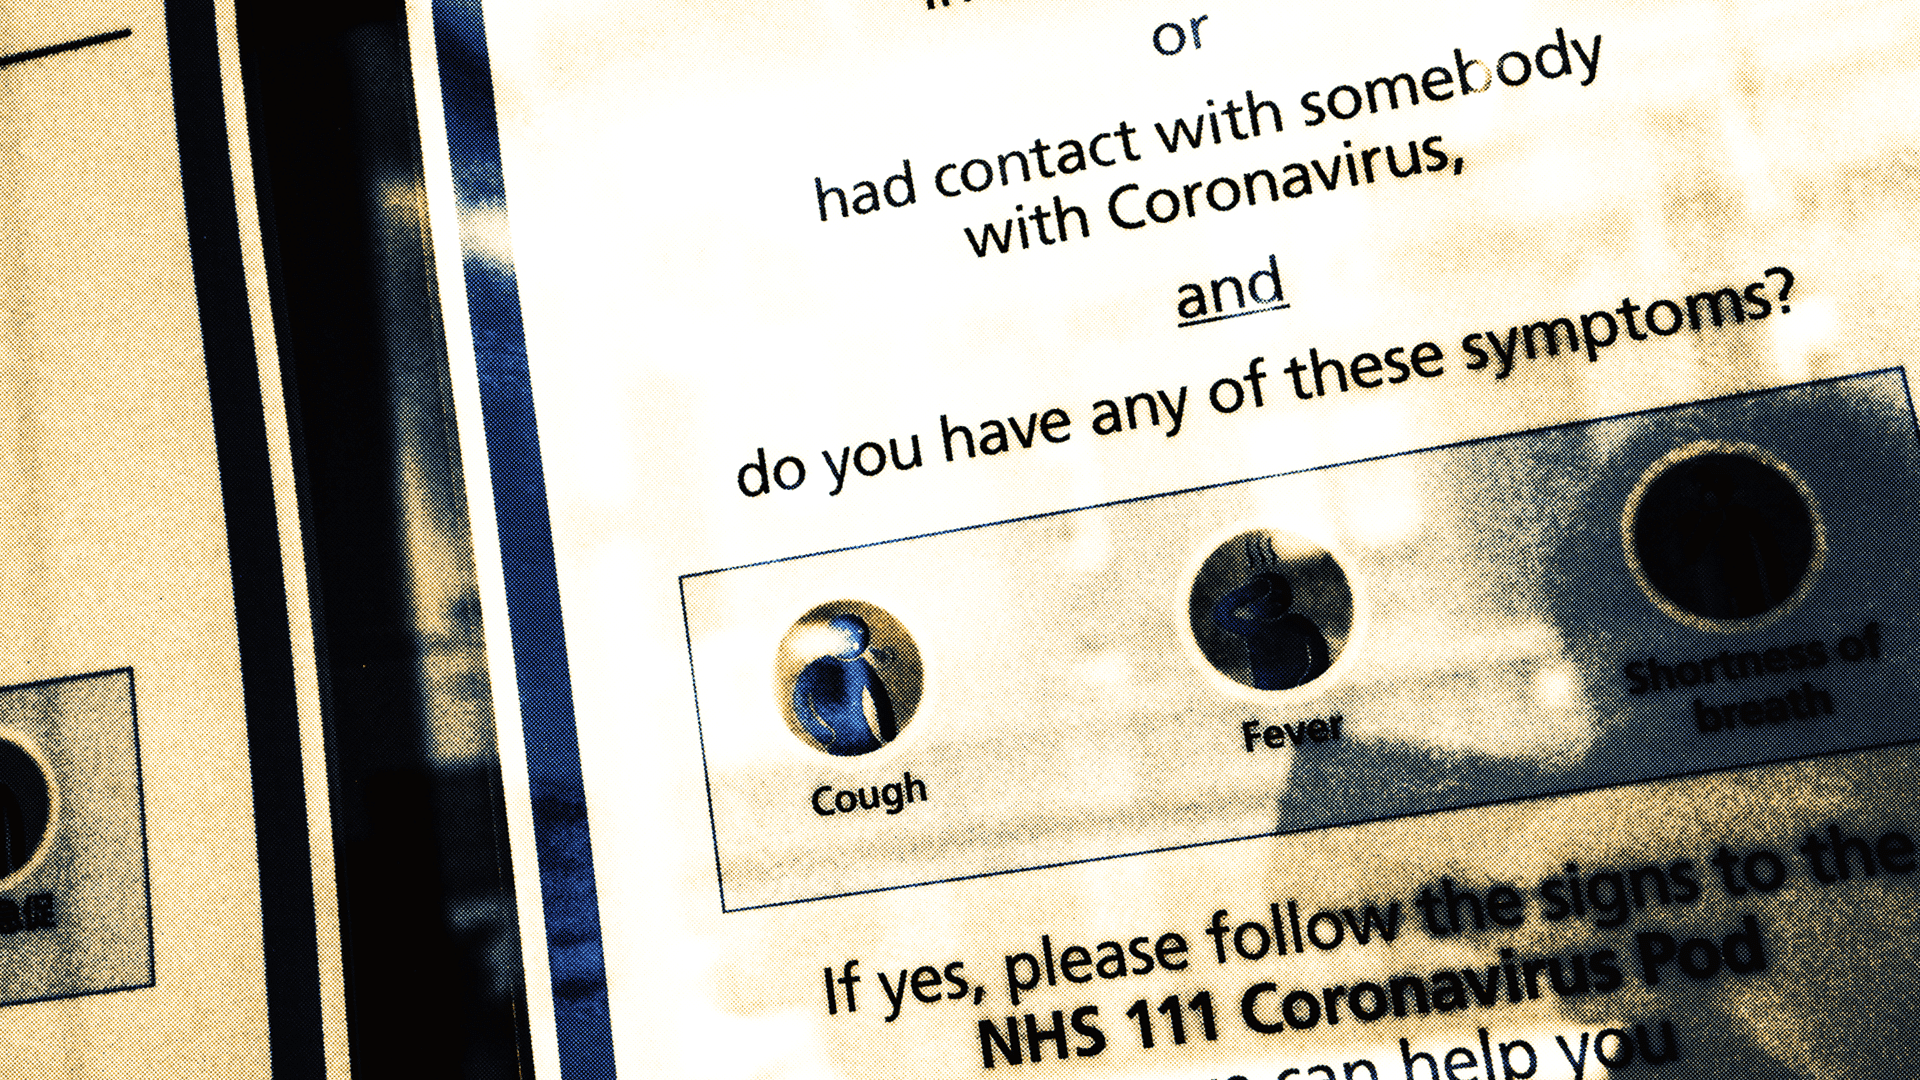 National Health Service (NHS) coronavirus advisory.